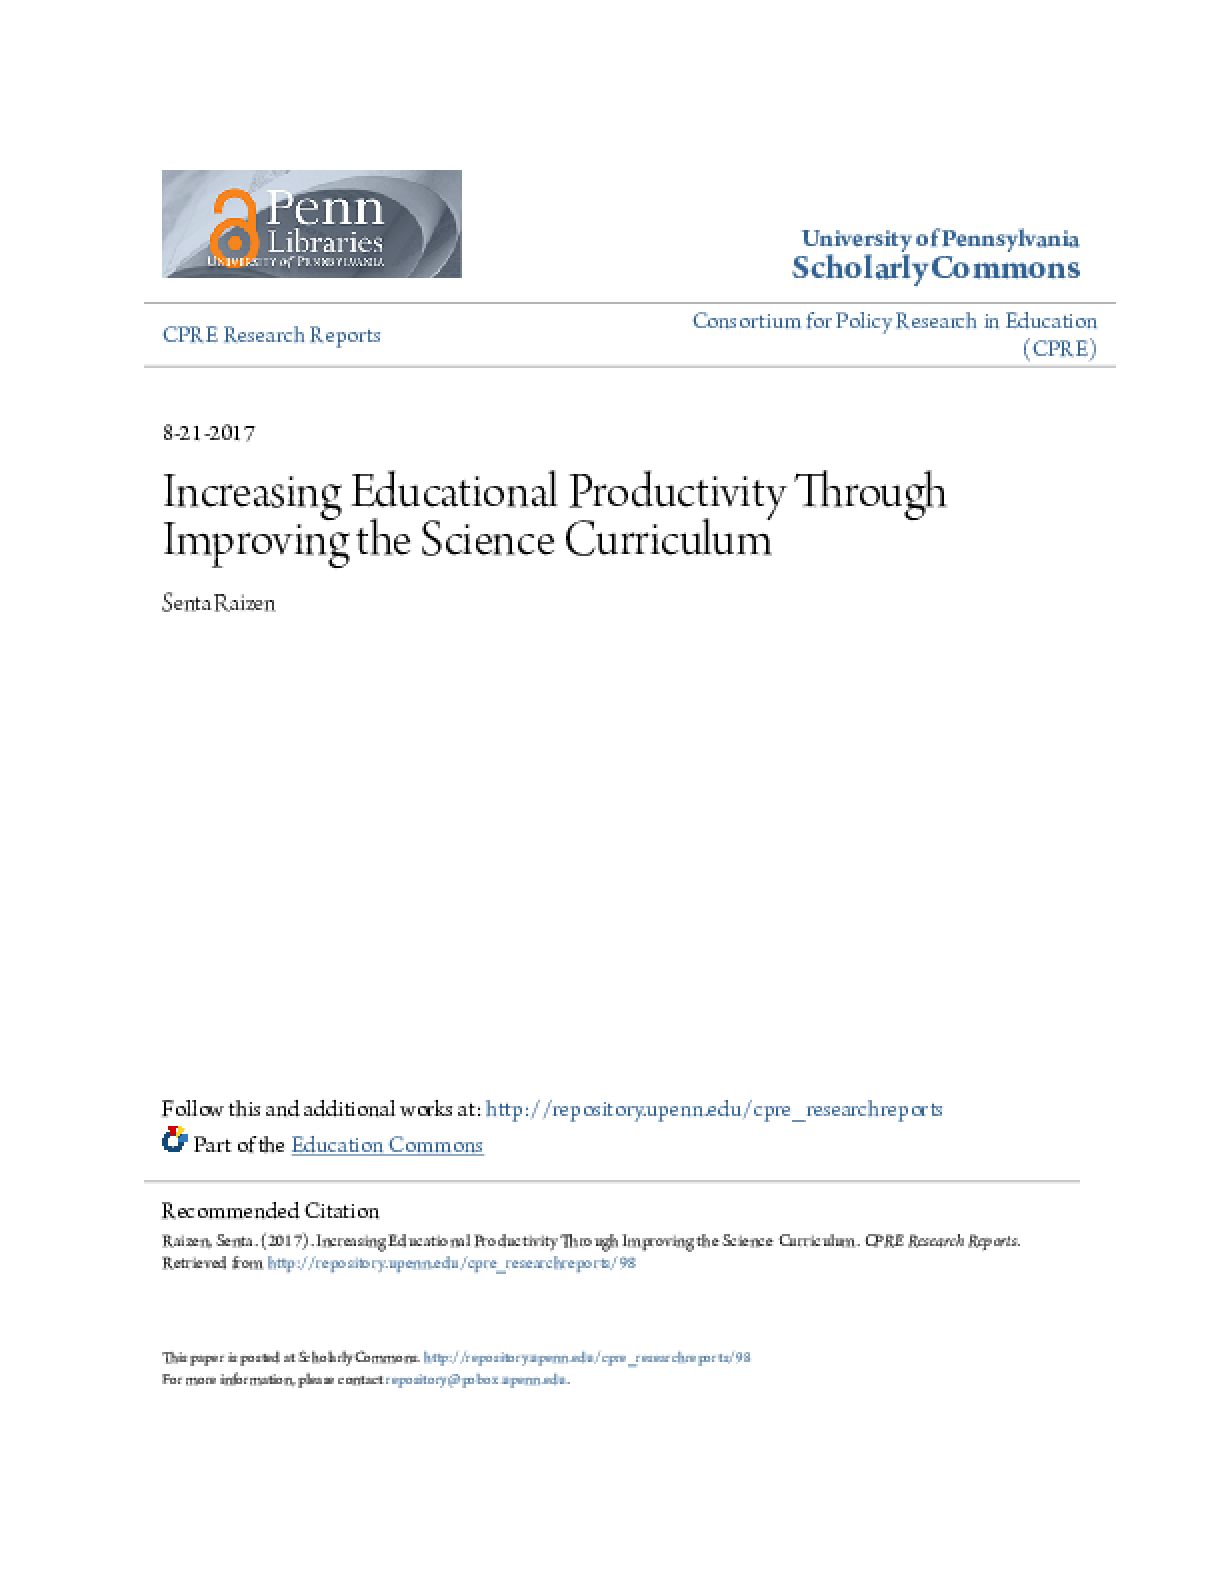 Increasing Educational Productivity Through Improving the Science Curriculum